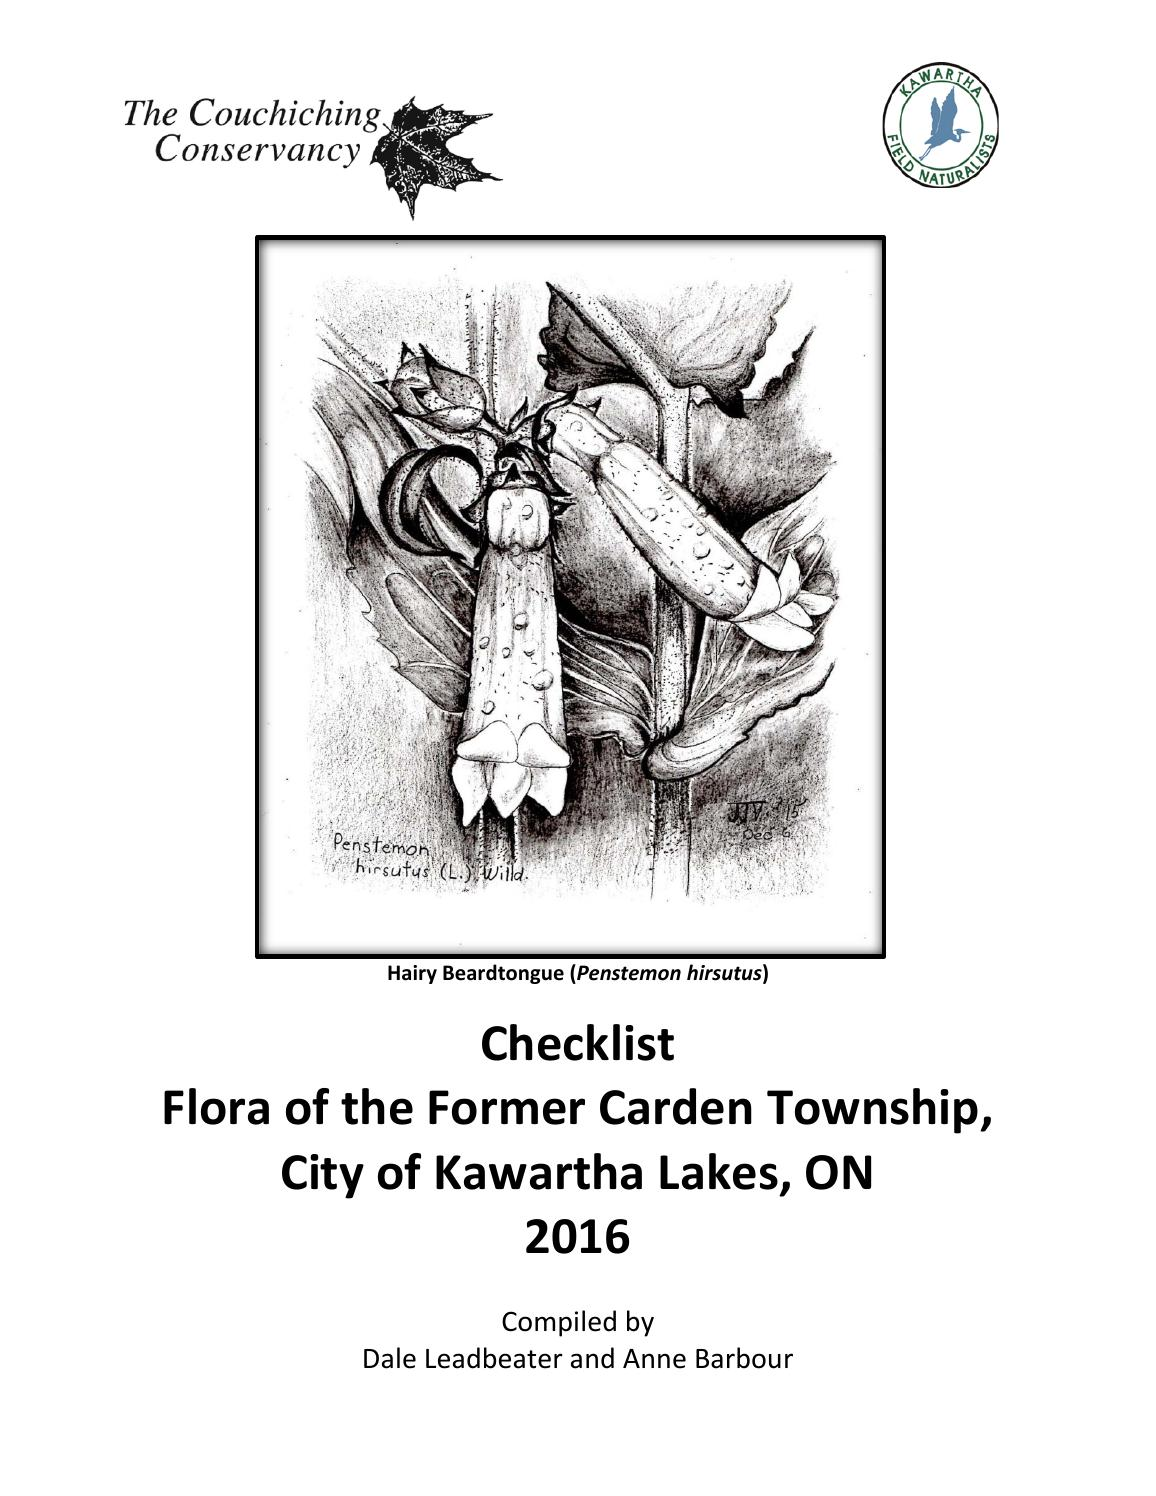 Adult Guide Kawartha Lakes